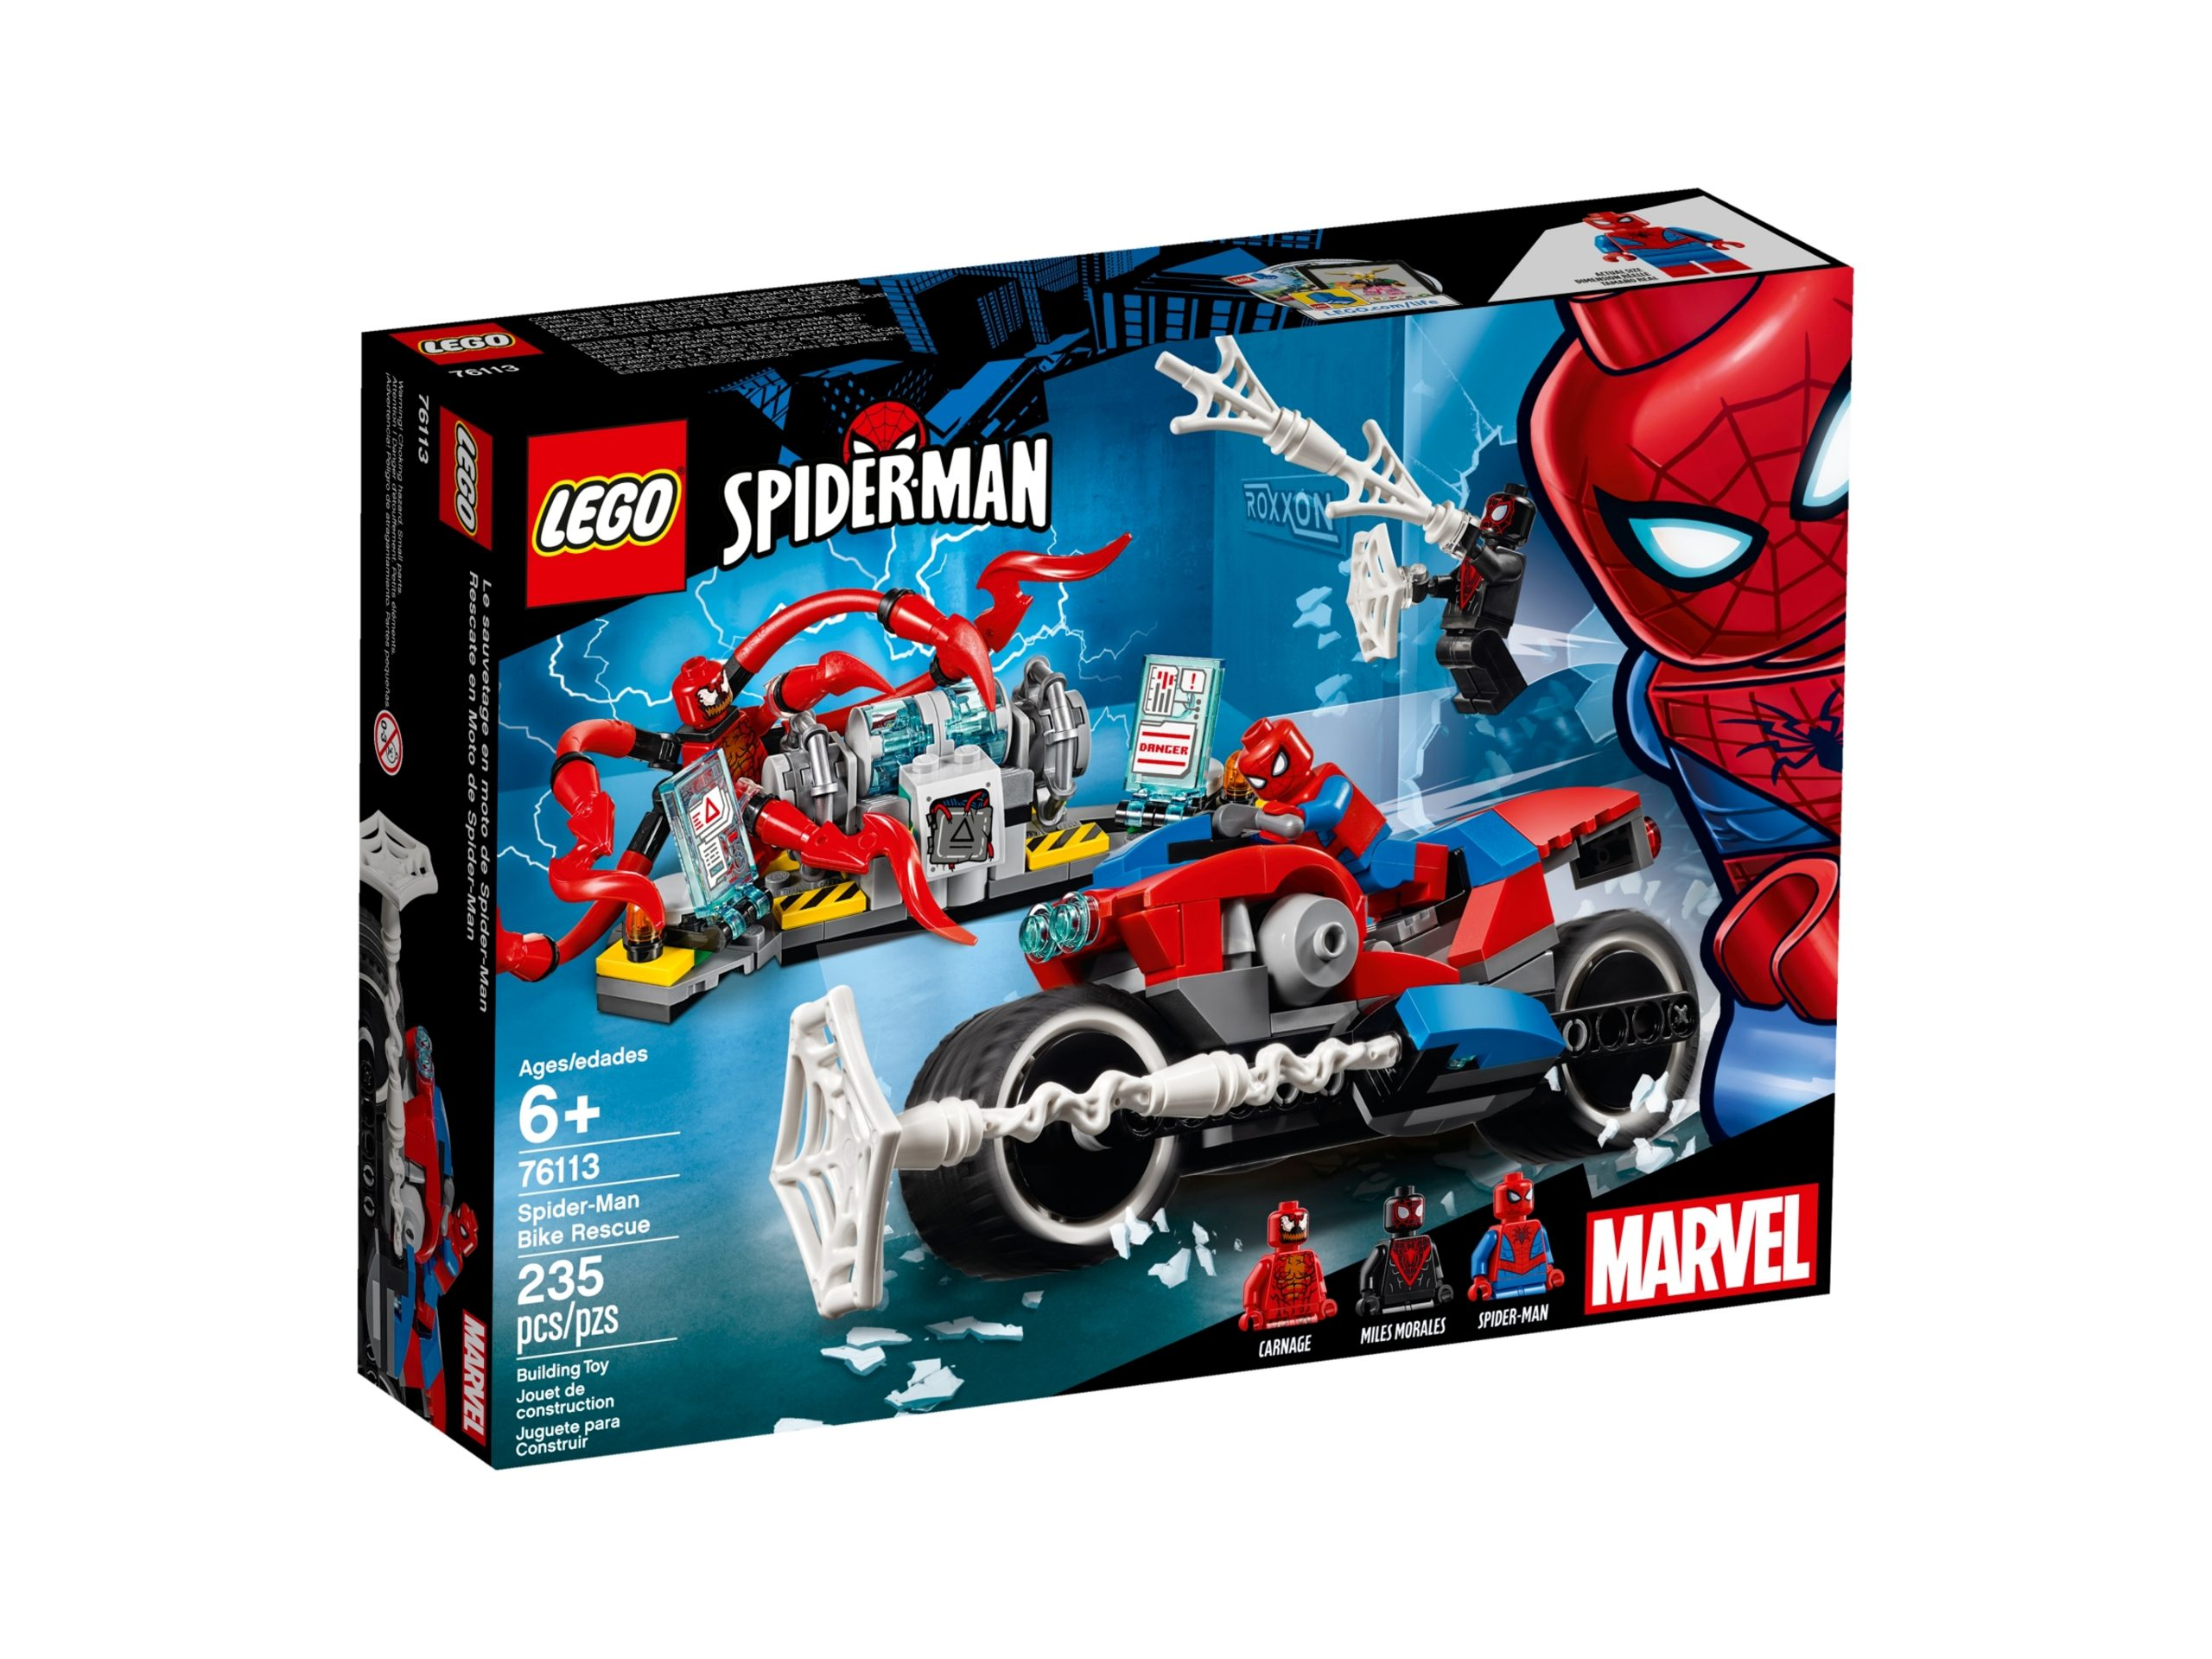 lego 76113 spider man bike rescue scaled